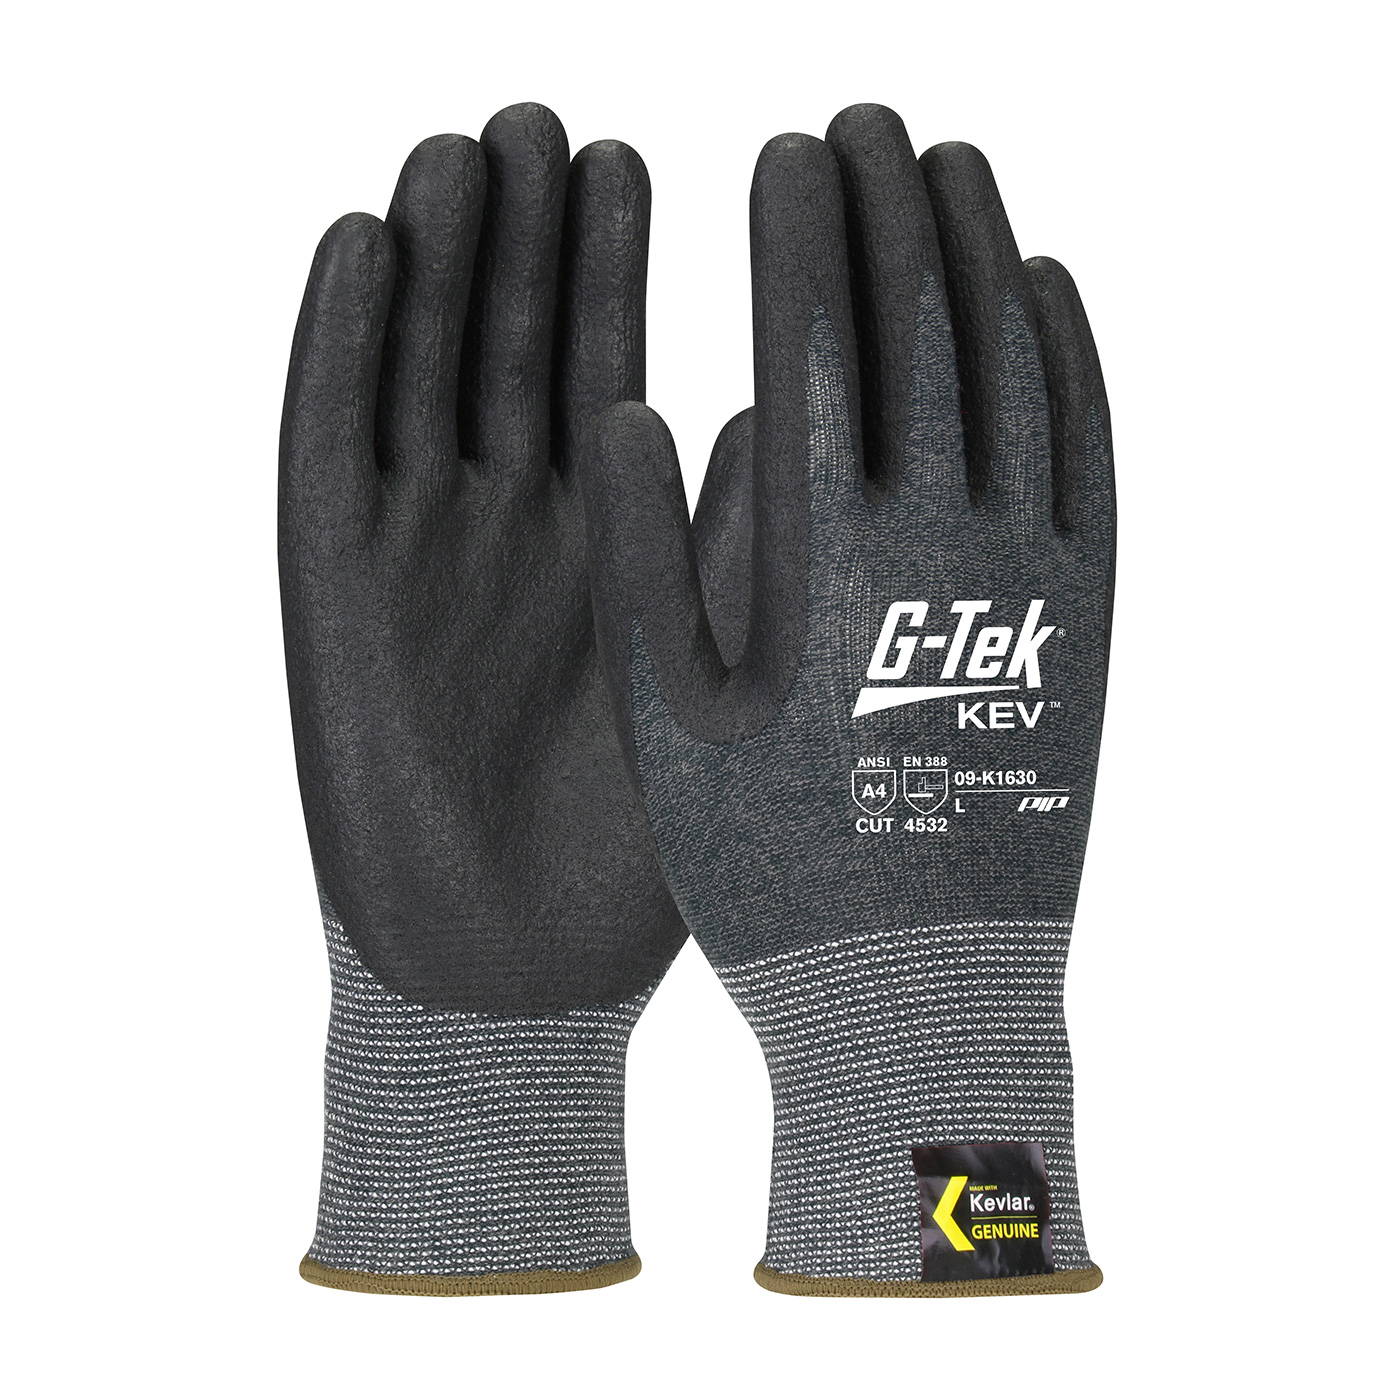 PIP® G-Tek® Kev™ Foam Nitrile Coated Kevlar® Gloves